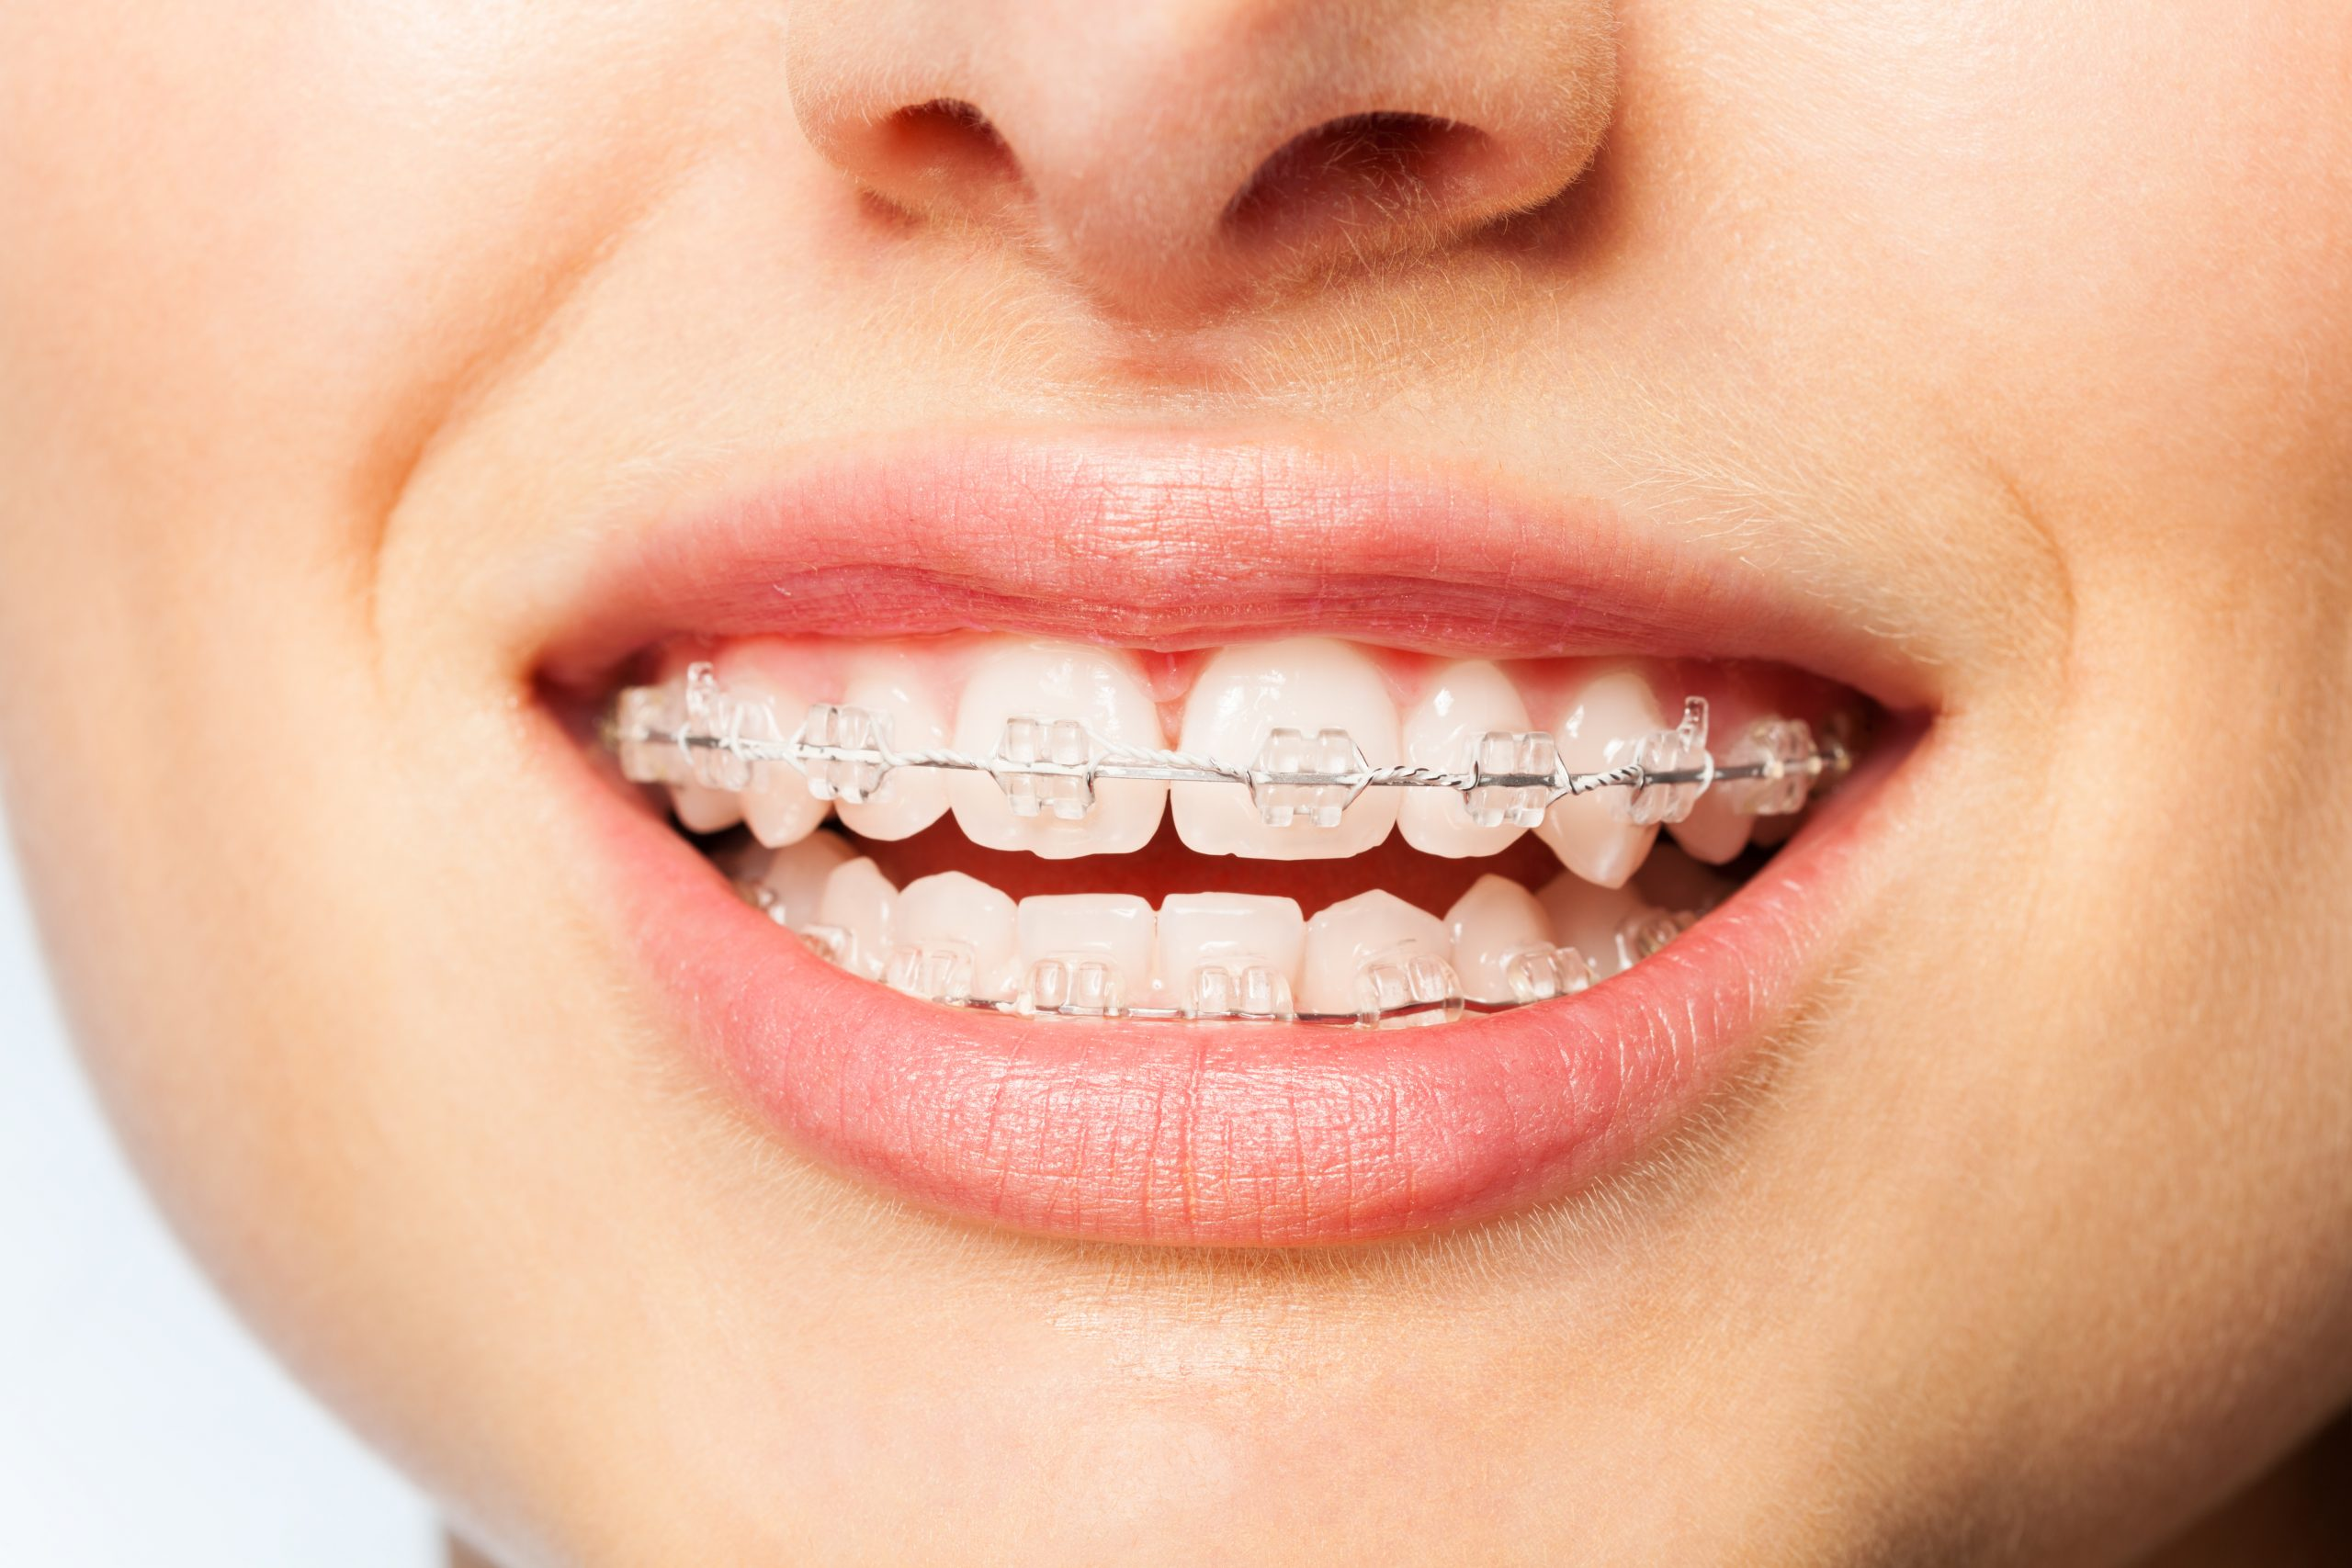 tony weir orthodontist brisbane braces